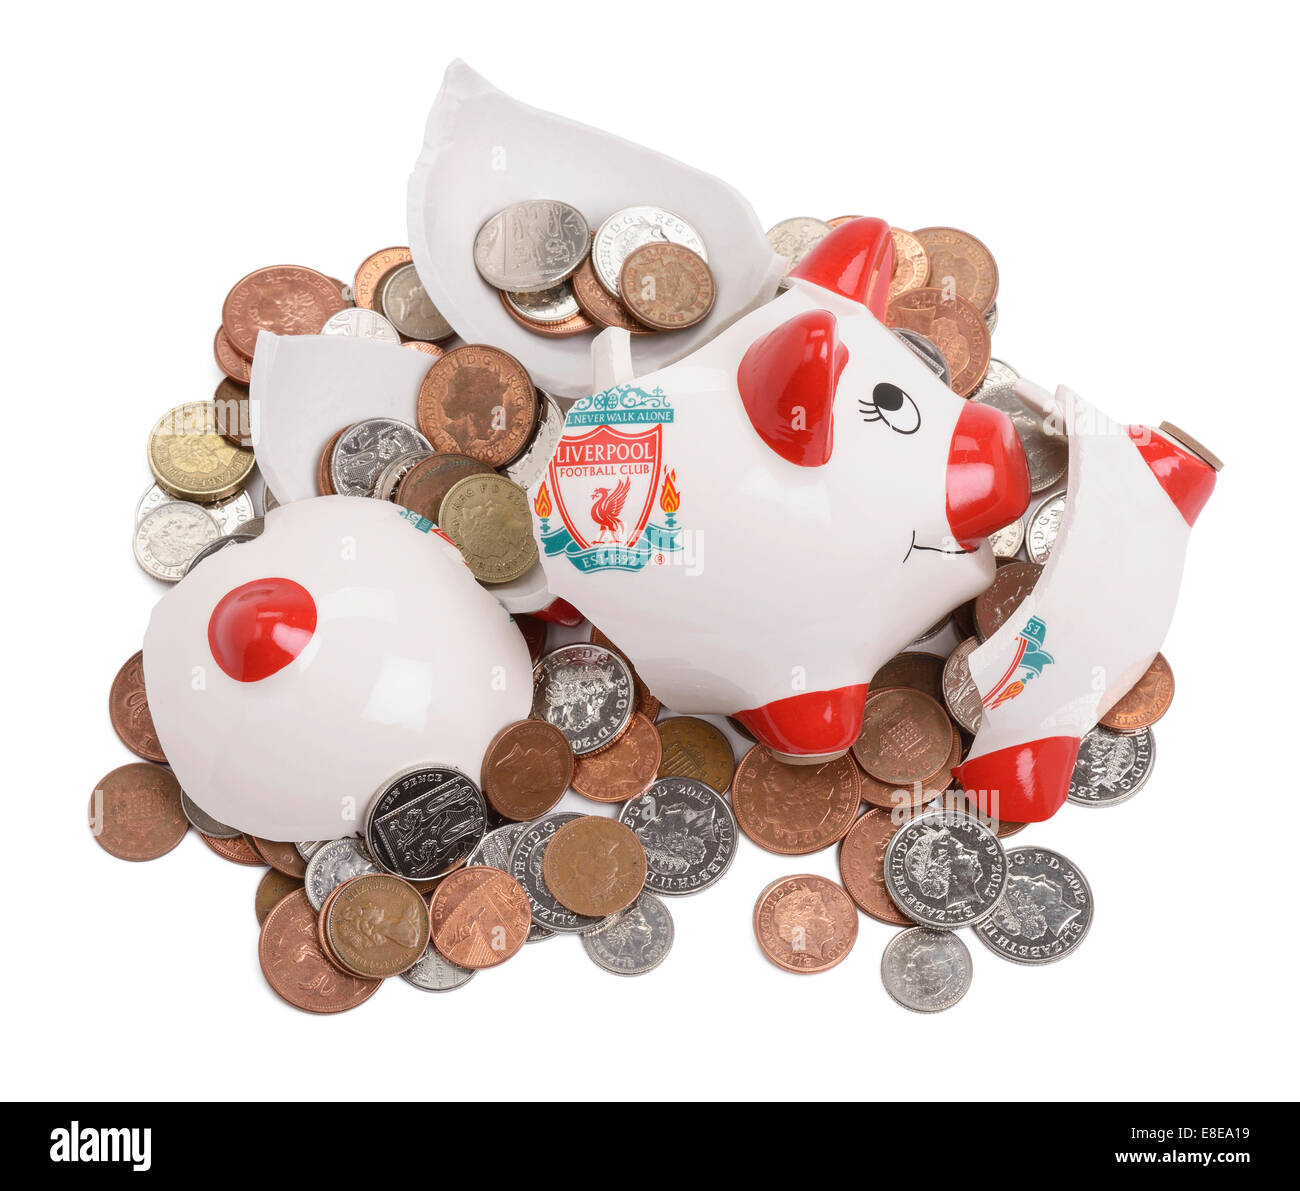 Smashed and broken Liverpool Football Club piggy bank - Stock Image